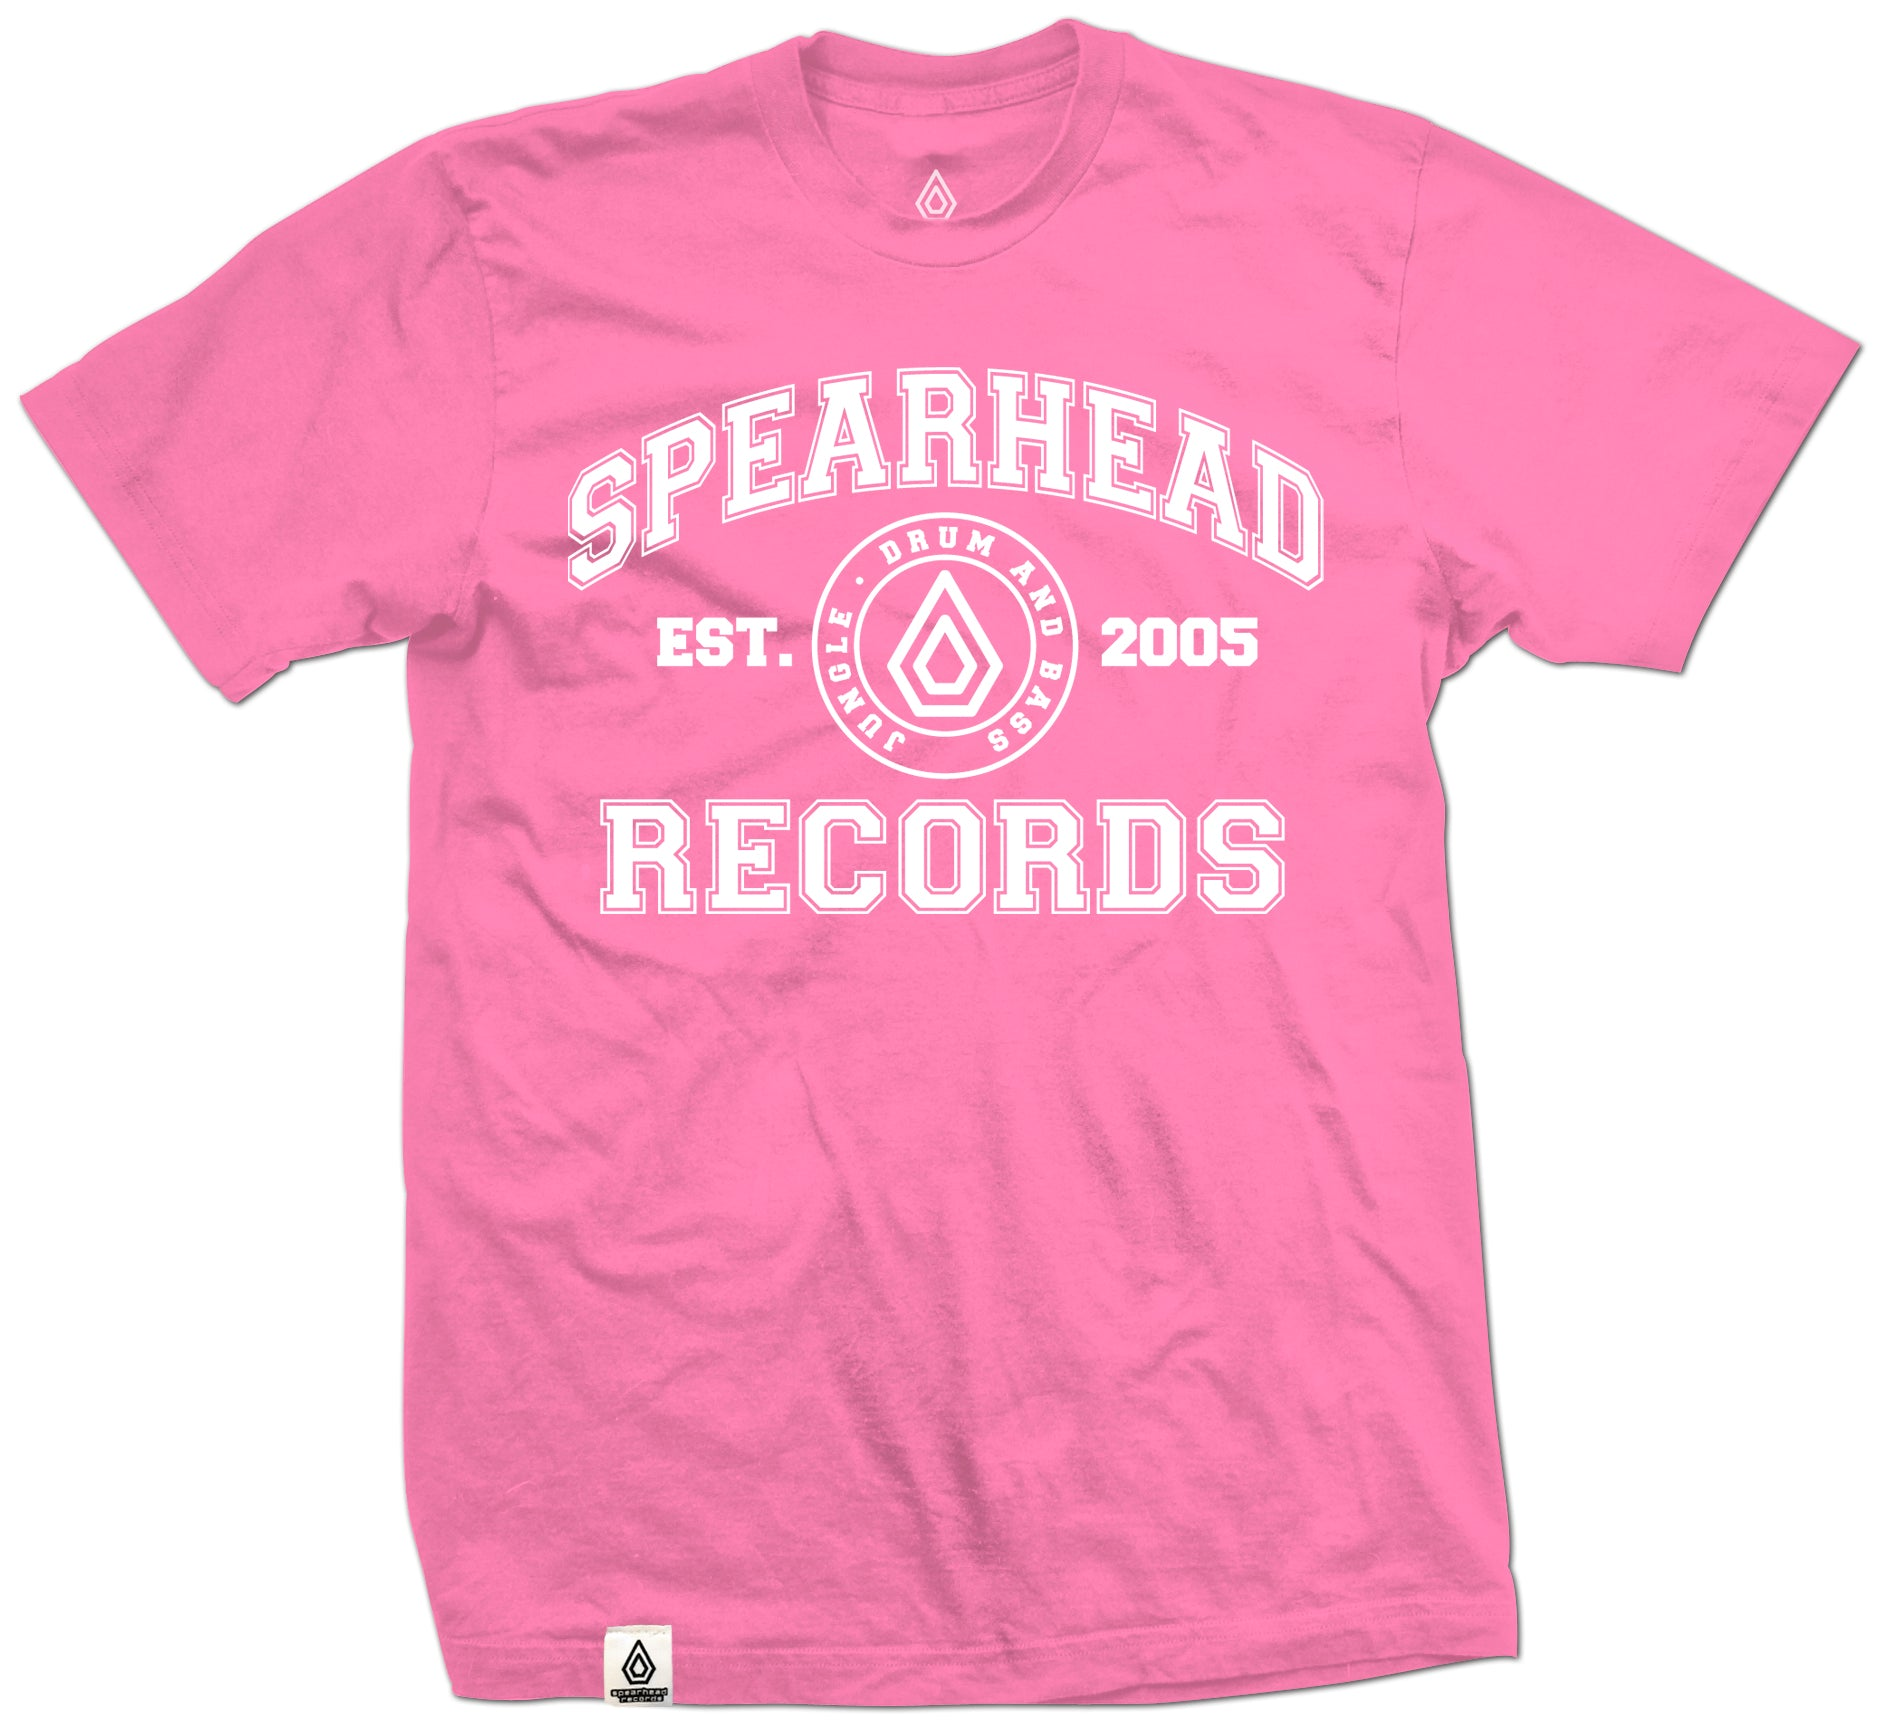 SALE - Small & Medium - Spearhead 'College' T-Shirt